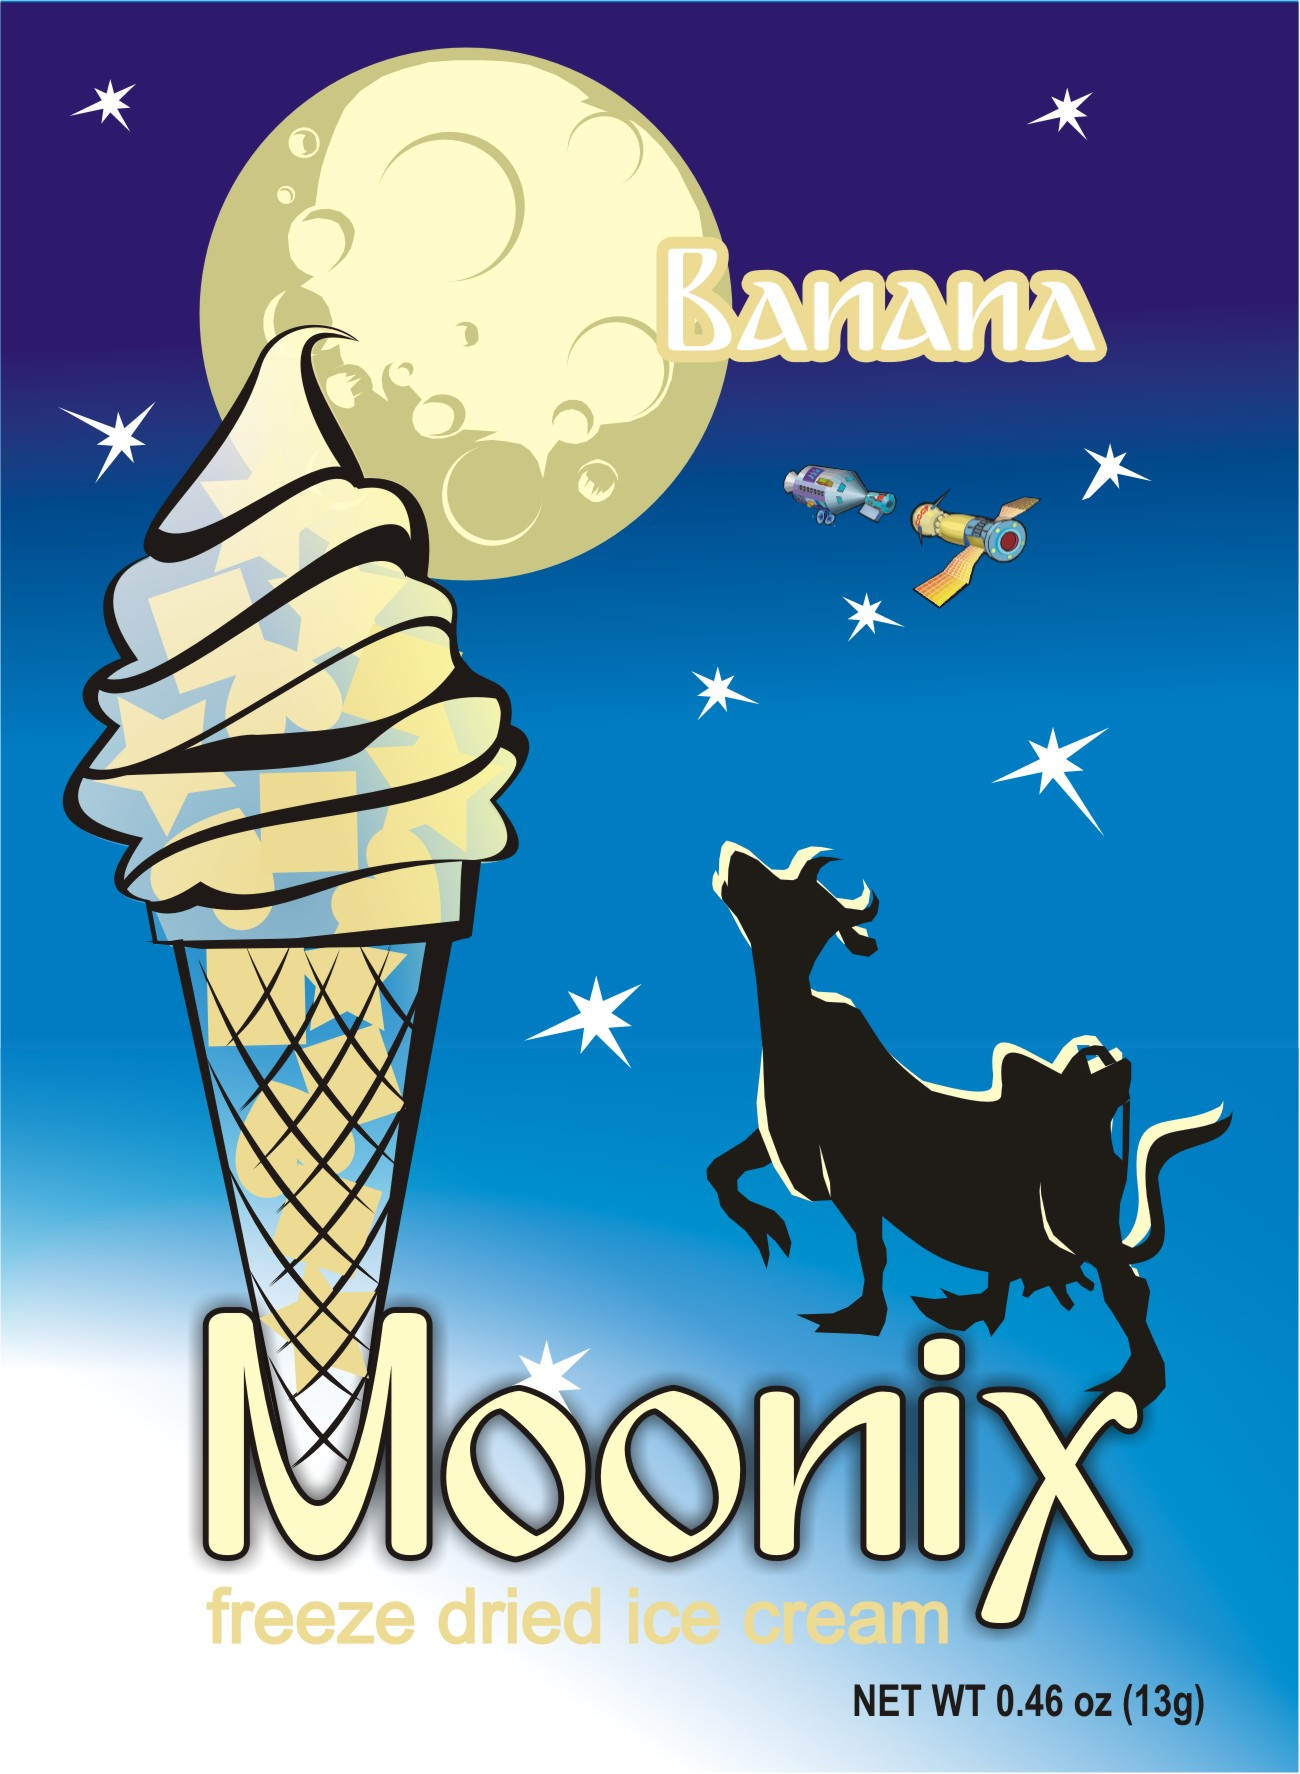 Moonix Freeze Dried Ice Cream Banana